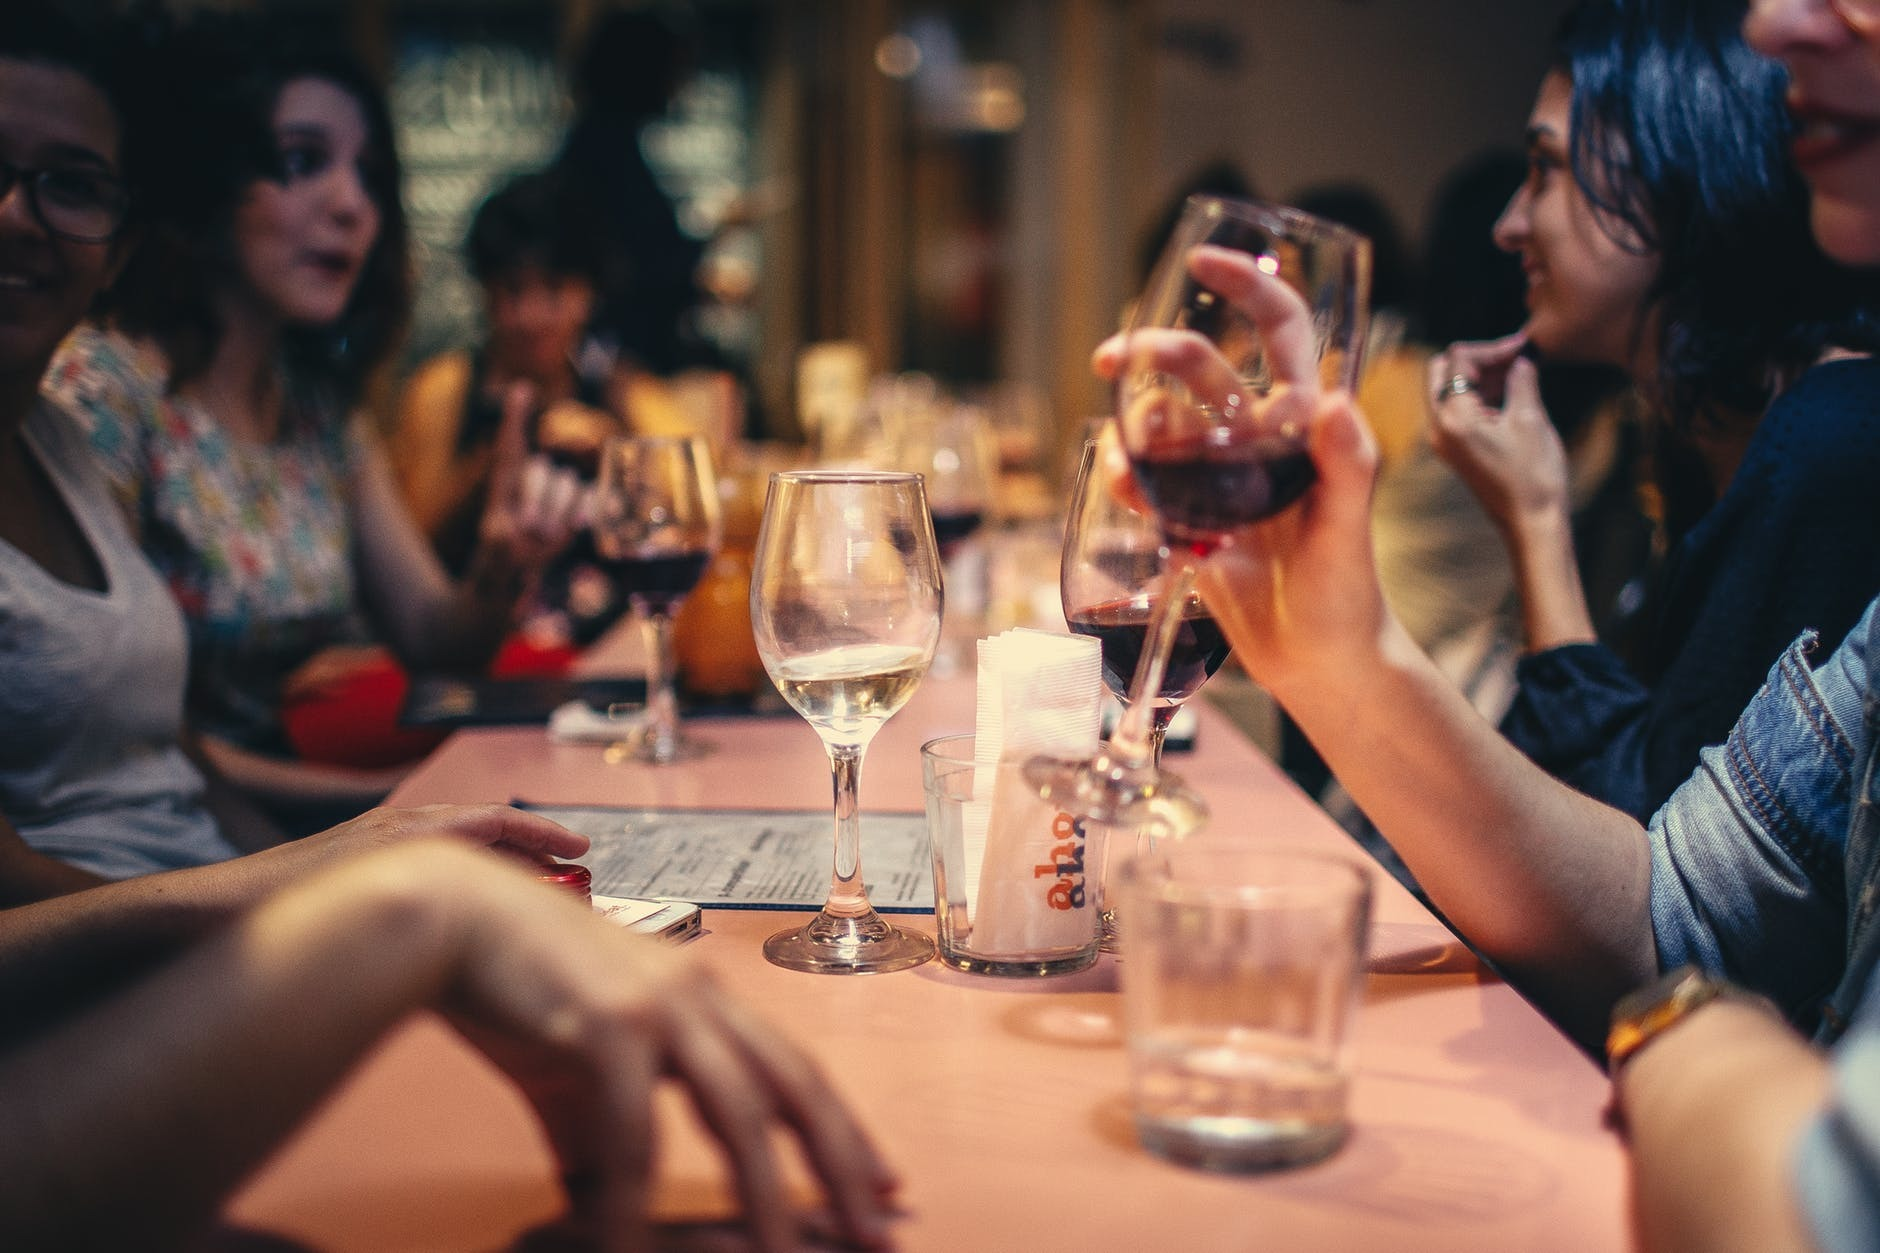 The Case for Continually Making New Friends